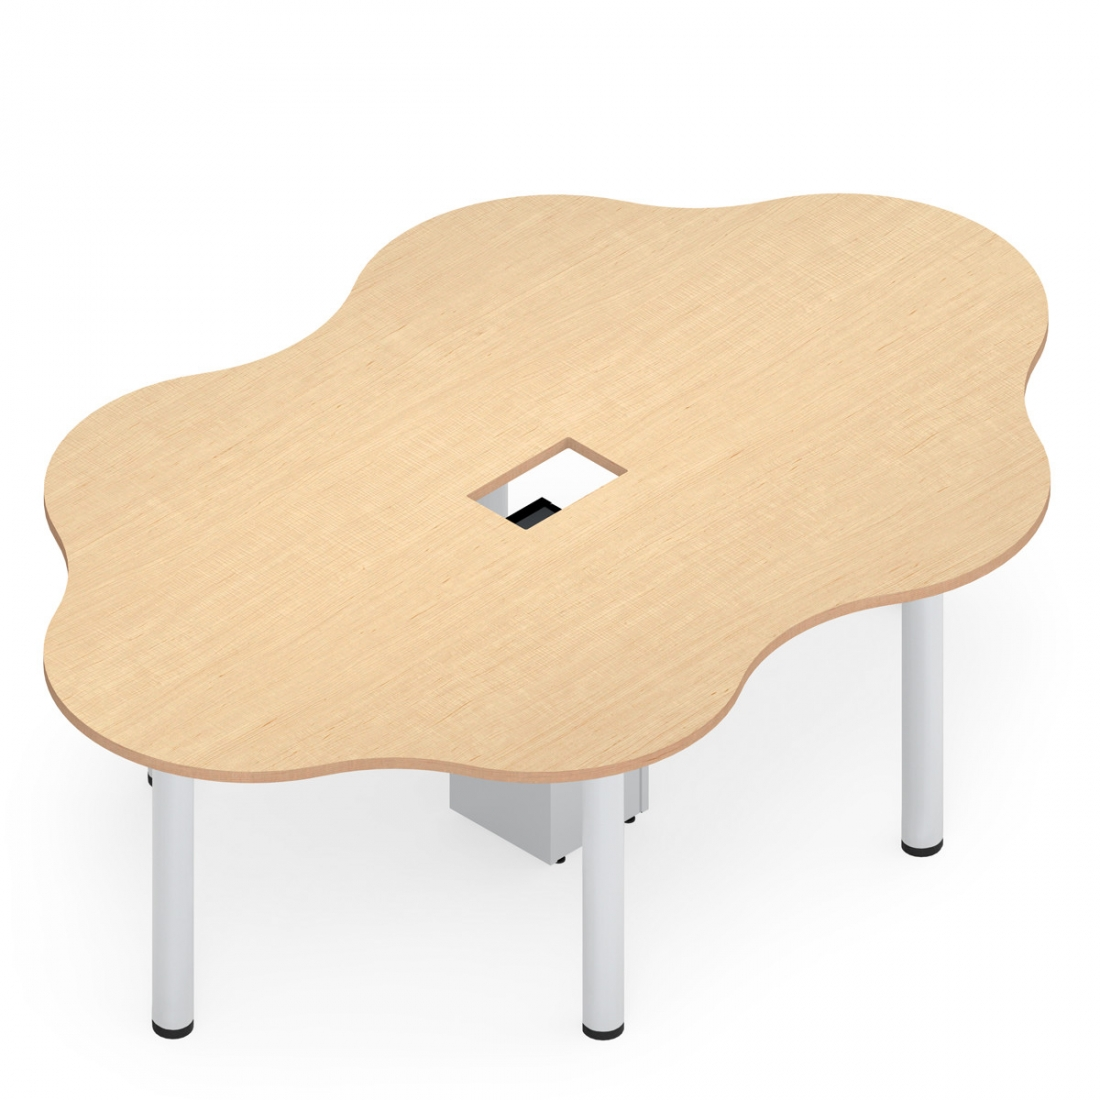 zook 6 person table